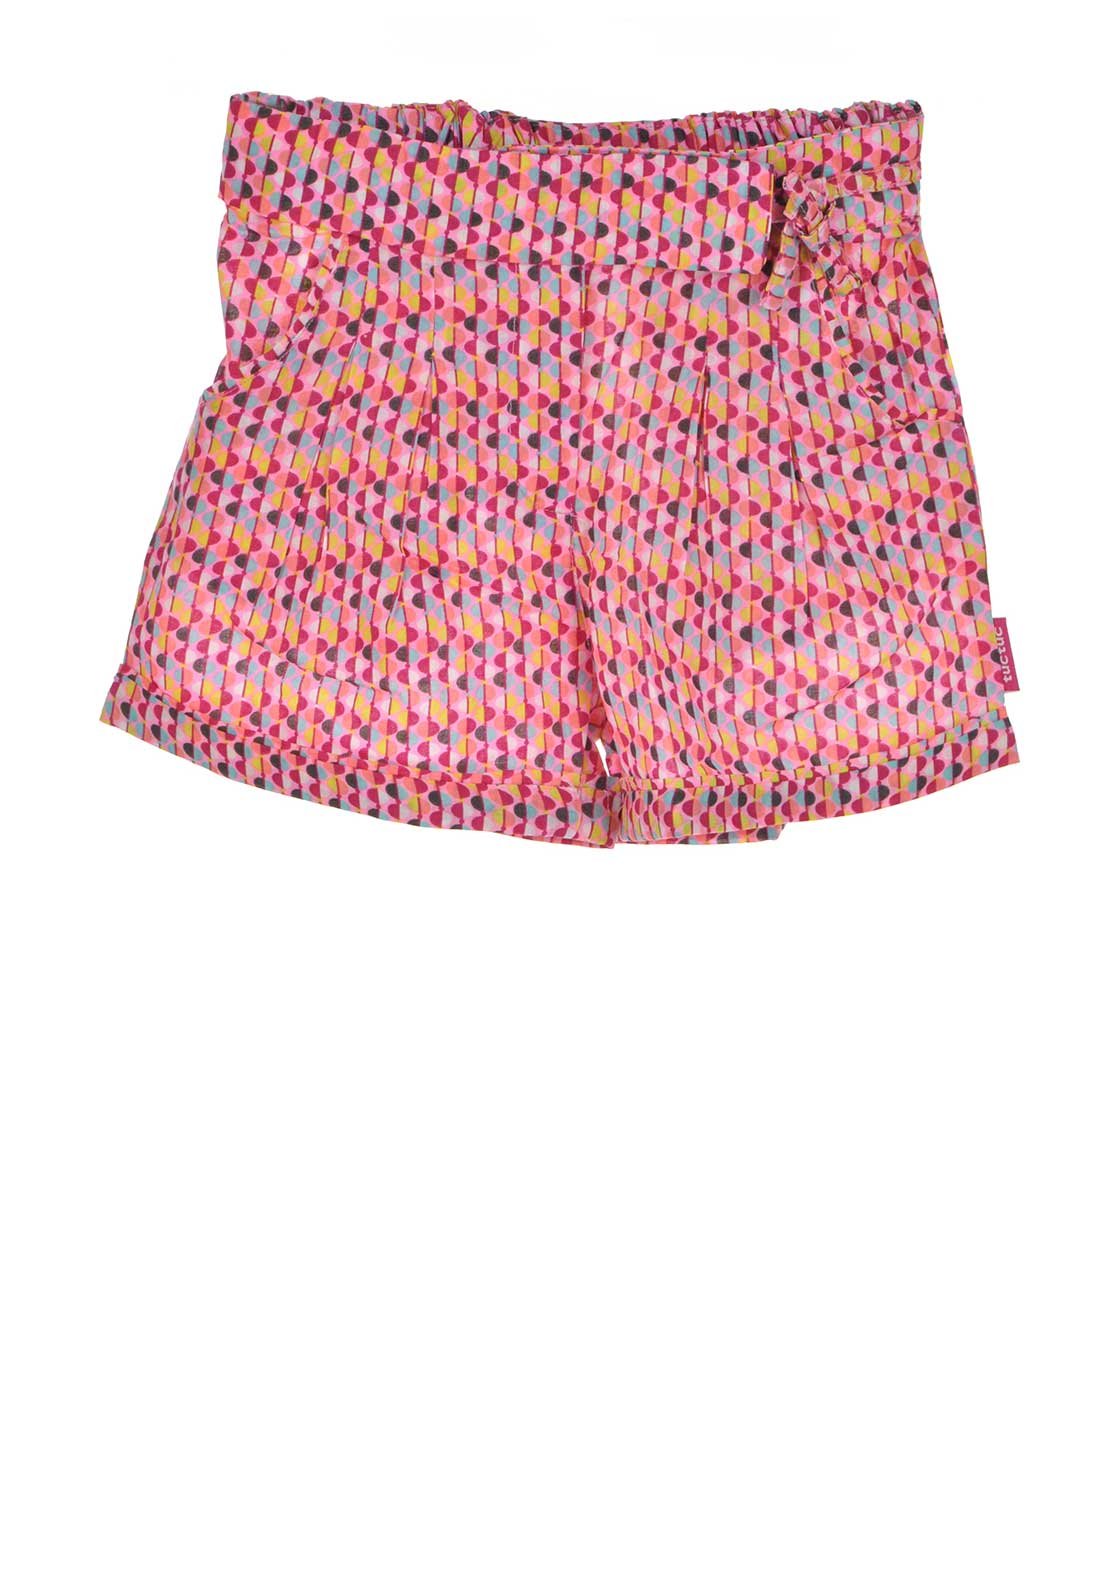 Tuc Tuc Girls Printed Shorts, Pink